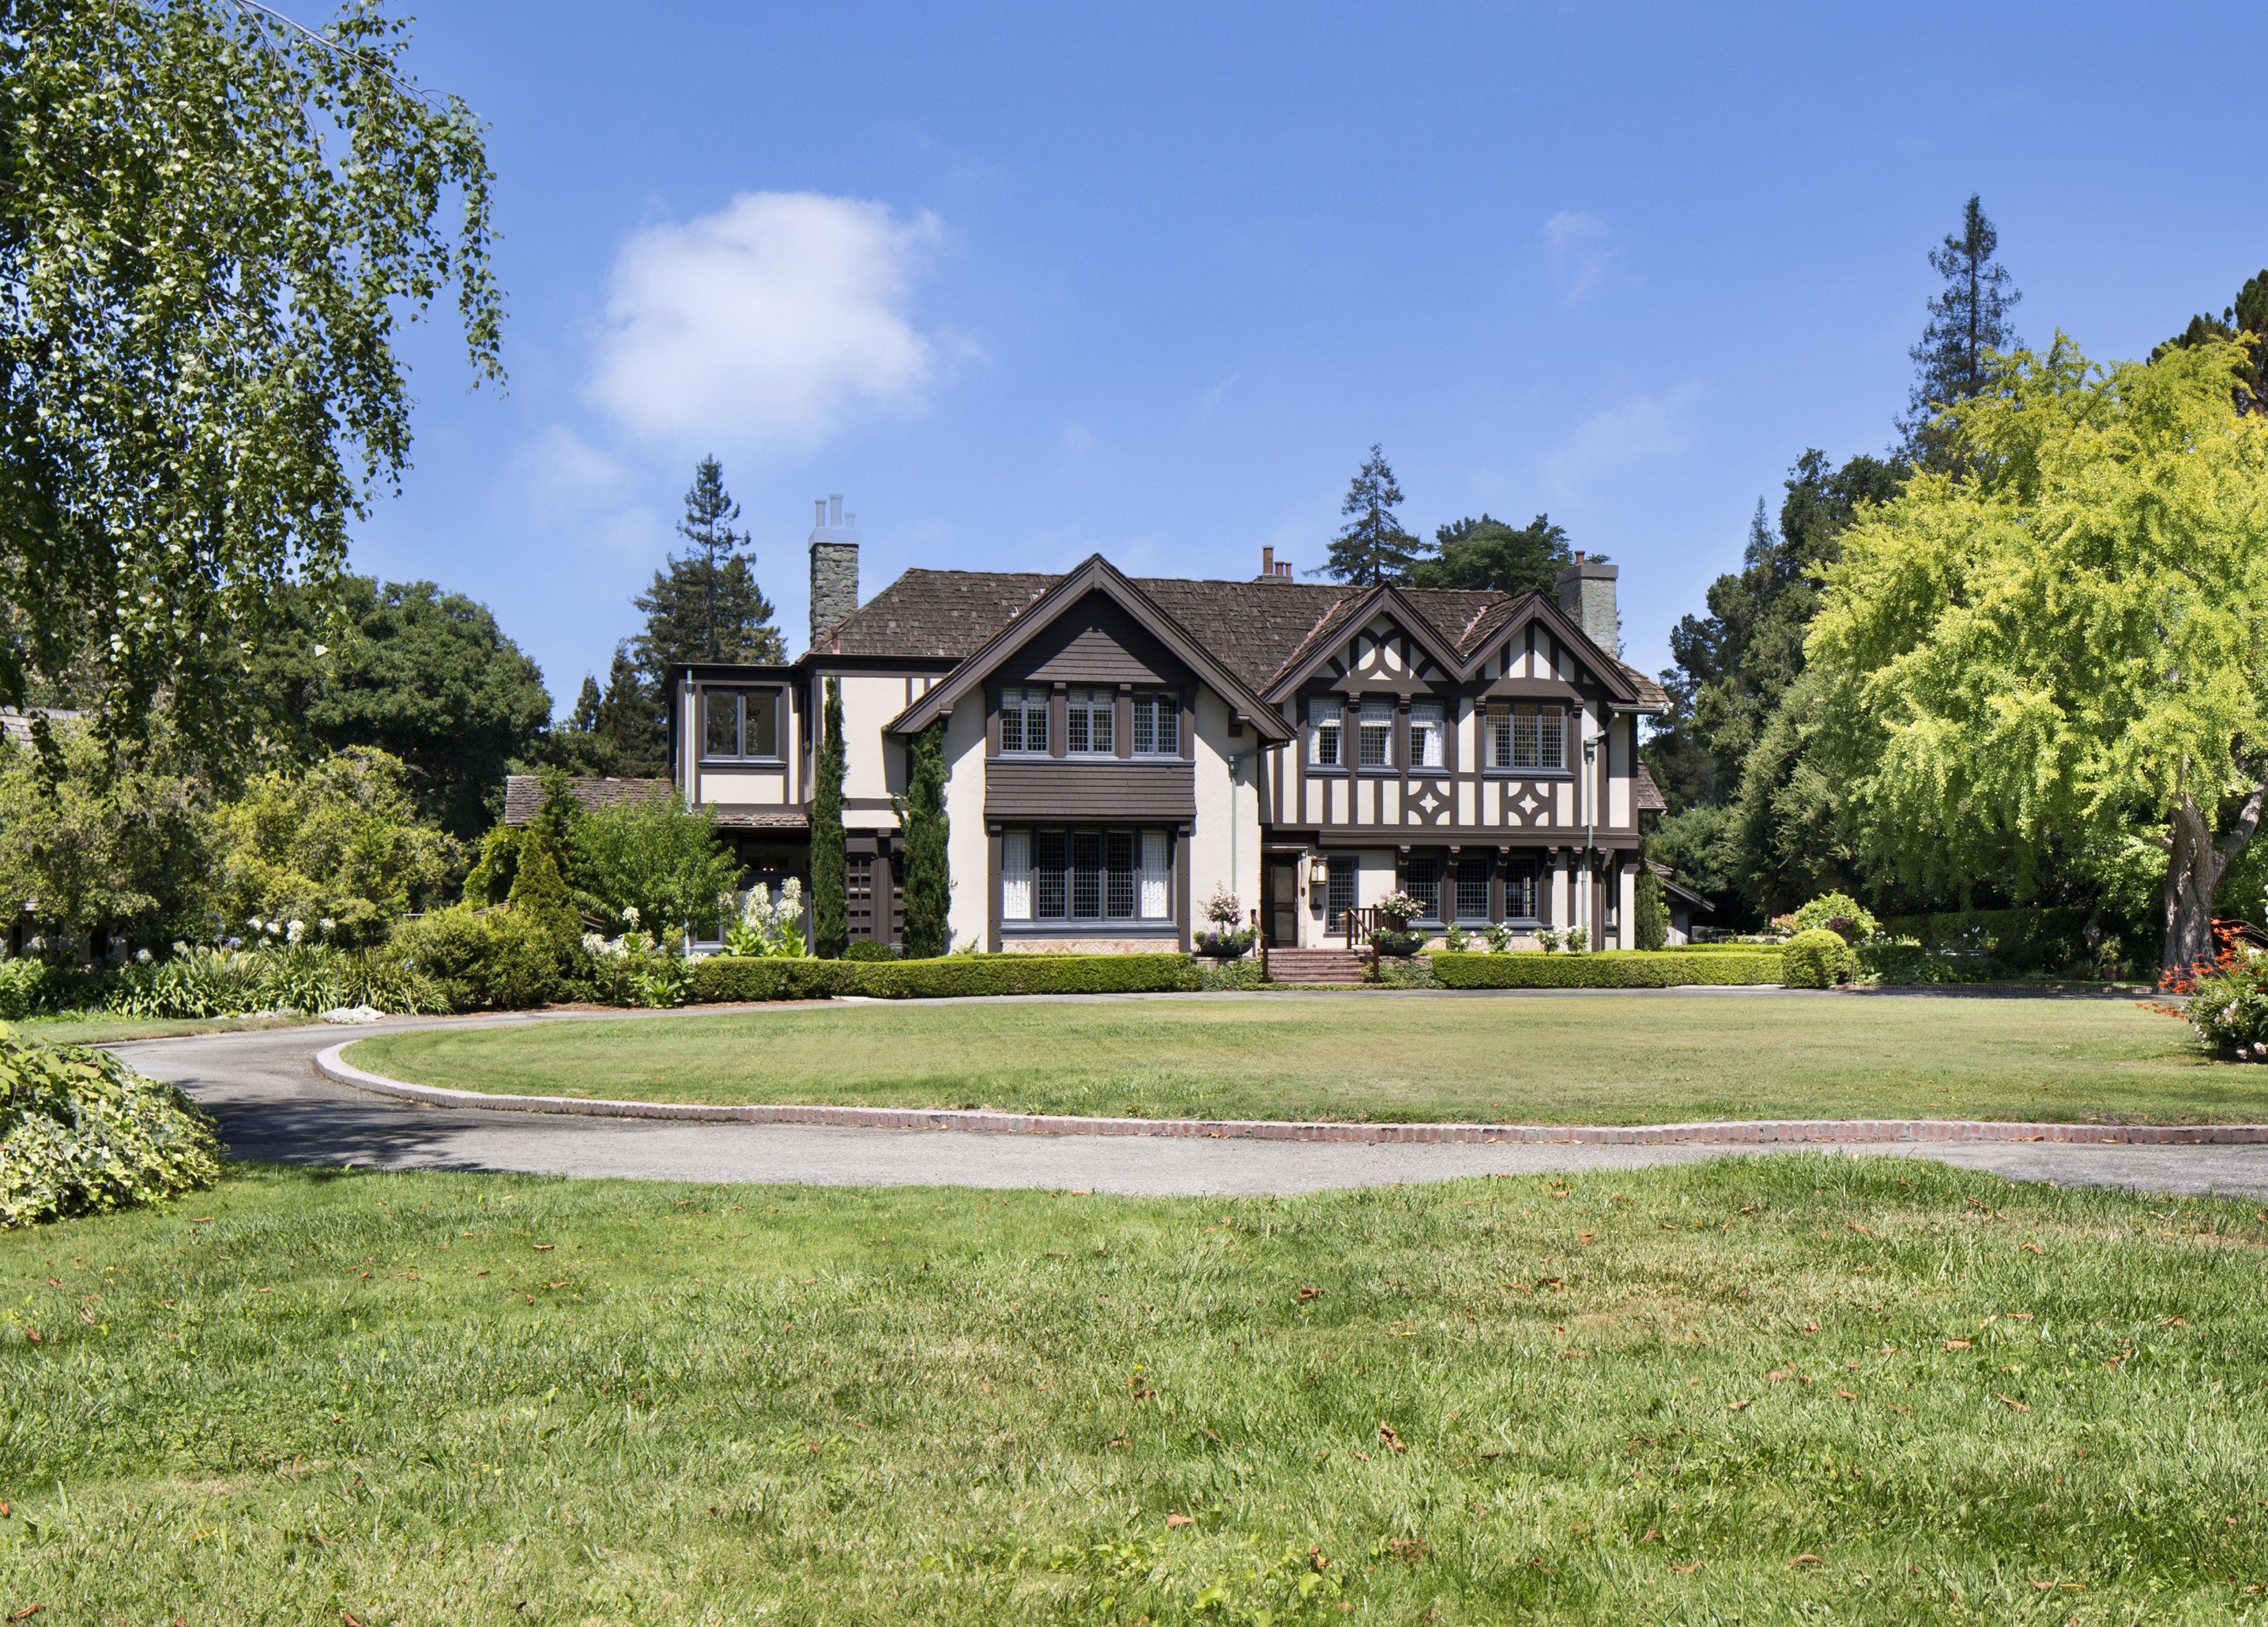 Single Family Home for Sale at 2-Acre West Atherton Estate 120 Selby Ln Atherton, California 94027 United States